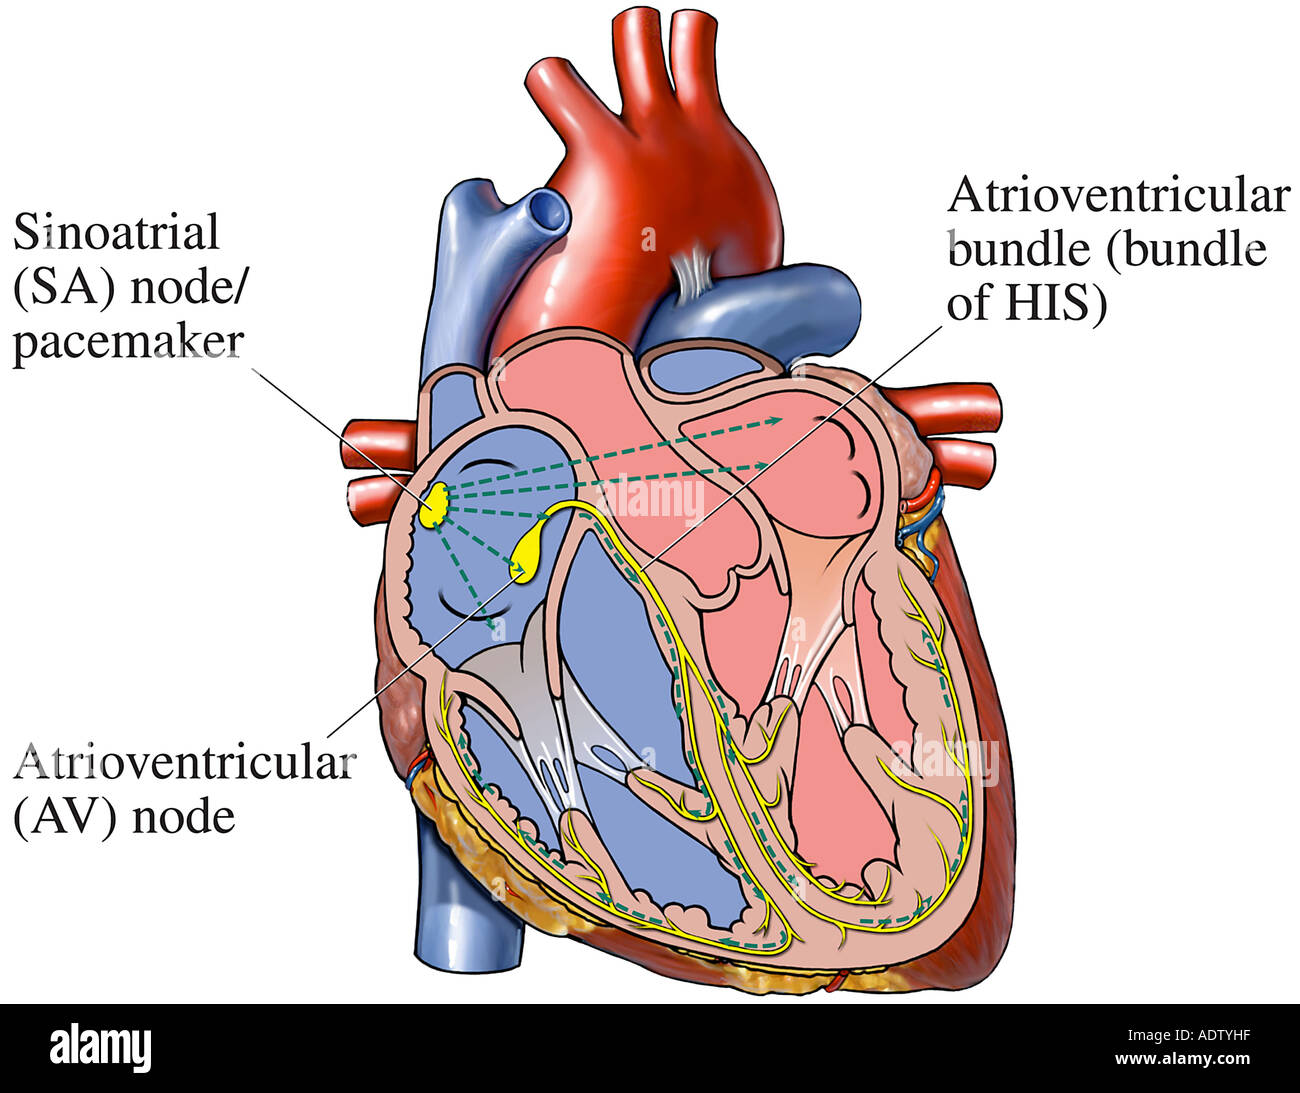 Cardiac Conduction System of the Heart Stock Photo: 7710814 - Alamy